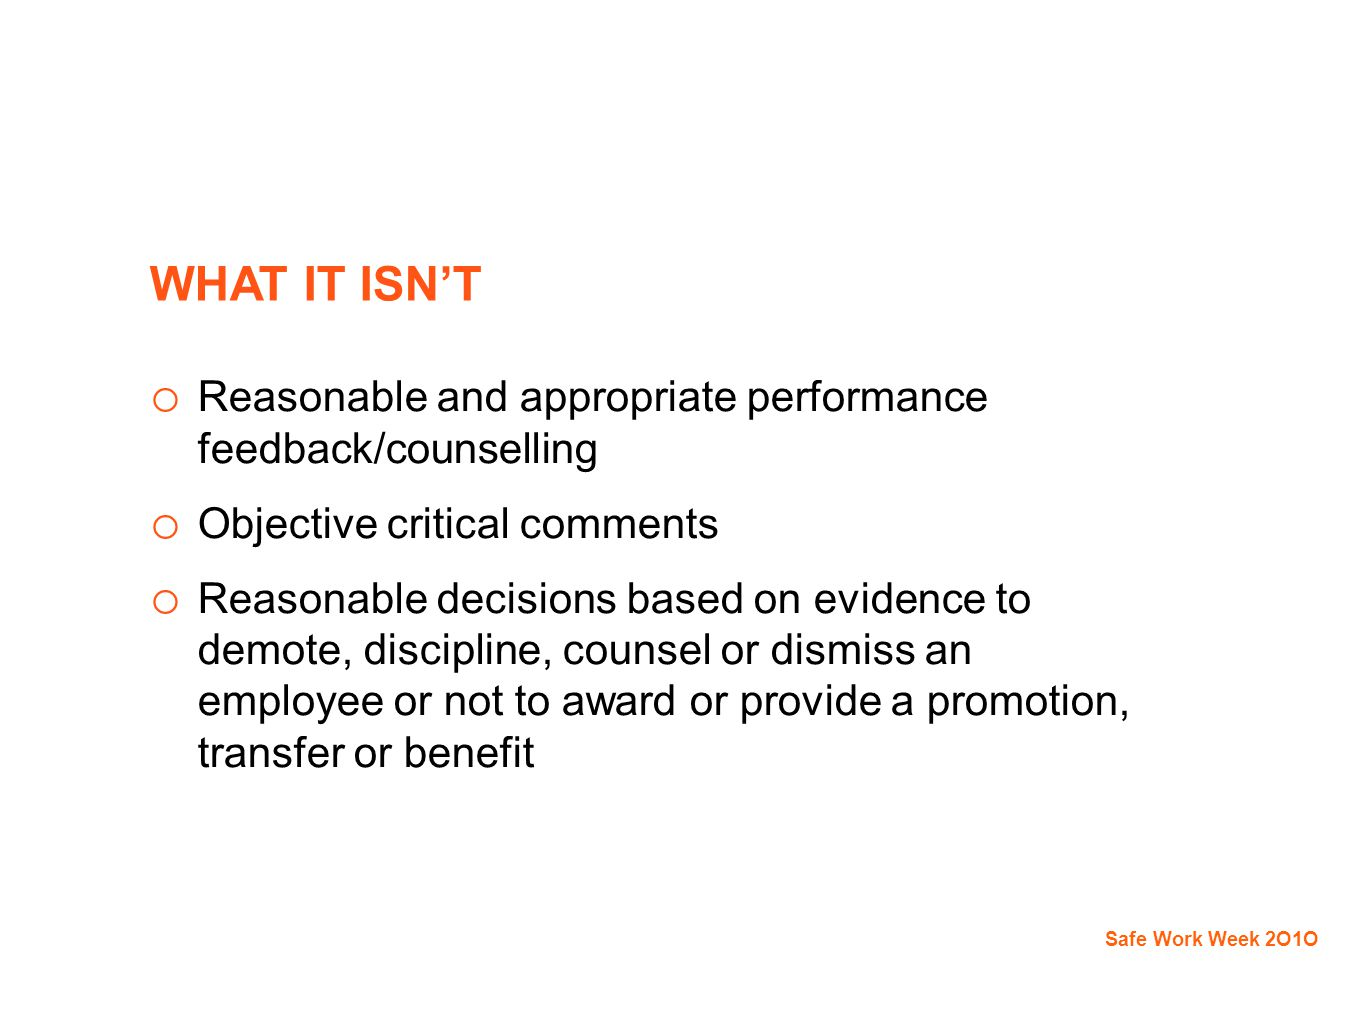 WHAT IT ISN'T o Reasonable and appropriate performance feedback/counselling o Objective critical comments o Reasonable decisions based on evidence to demote, discipline, counsel or dismiss an employee or not to award or provide a promotion, transfer or benefit Safe Work Week 2O1O